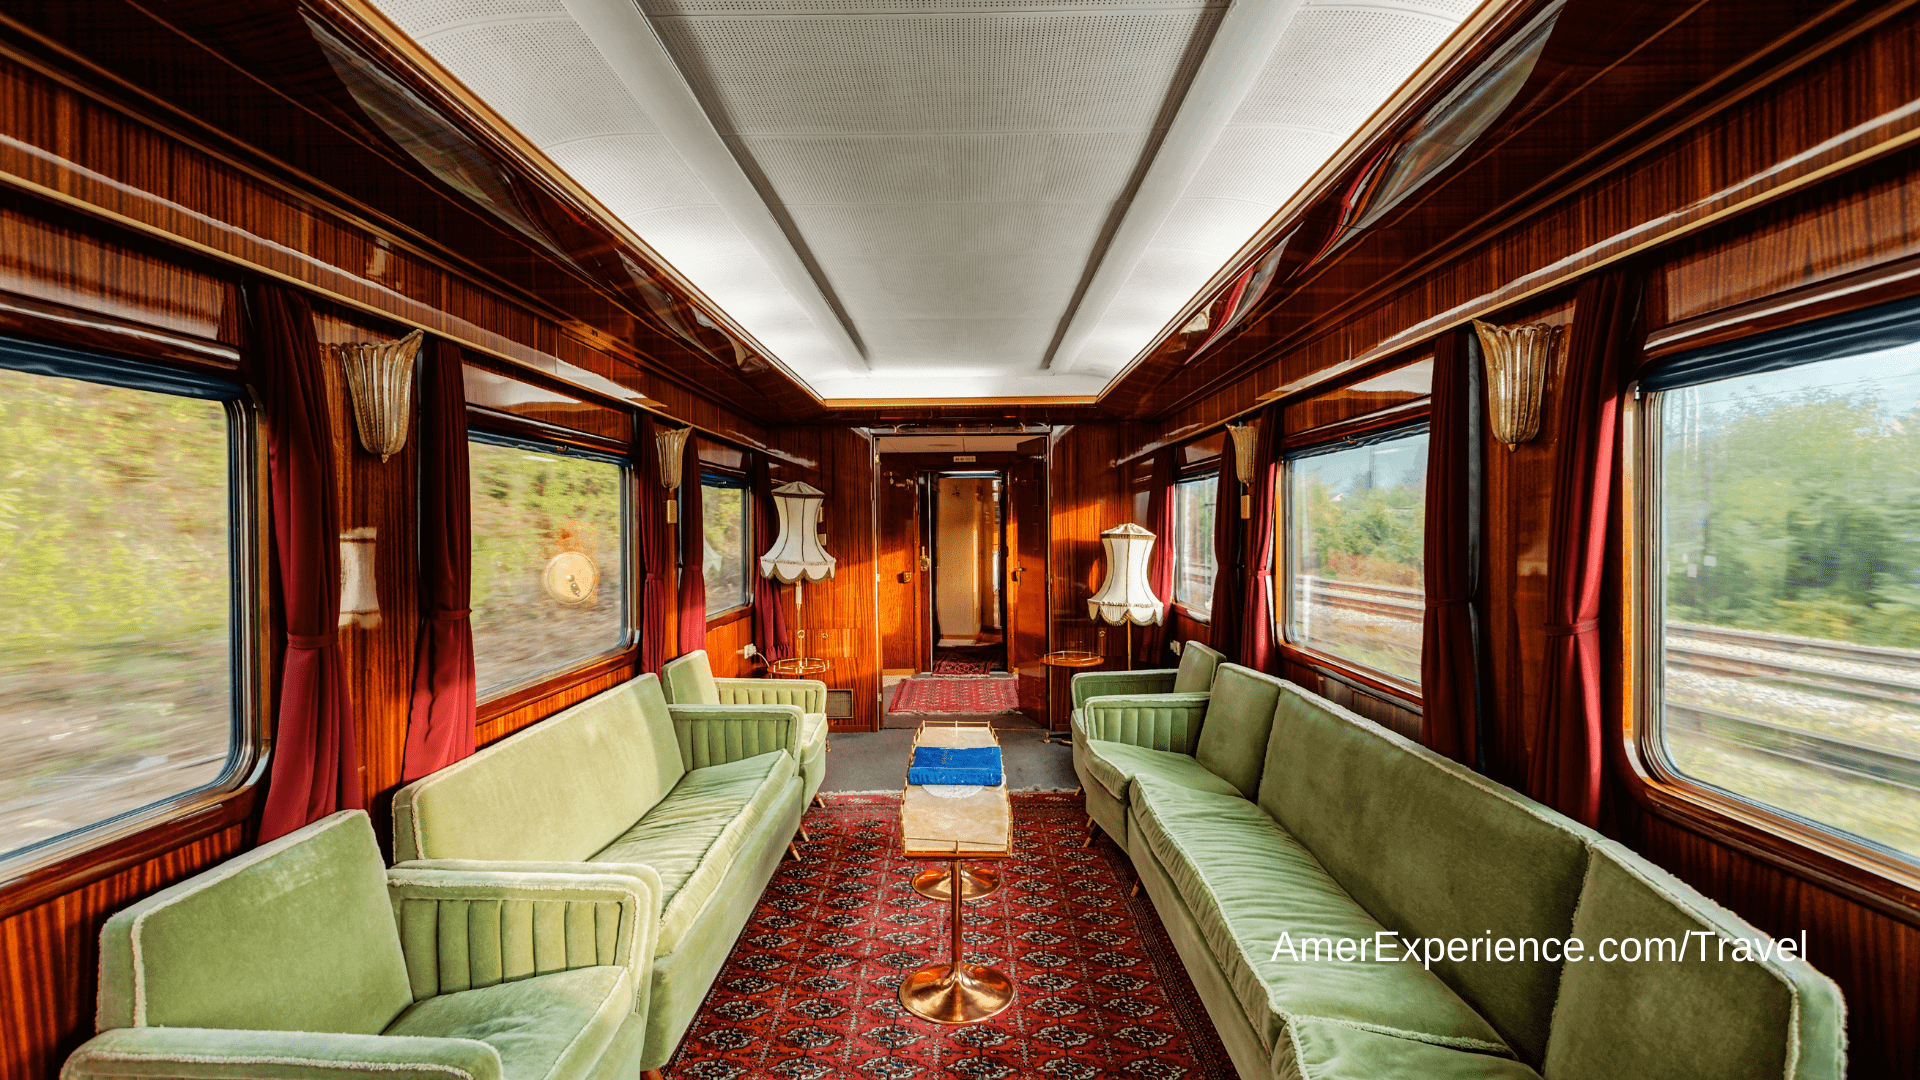 Luxury train journeys: Discover the world in a new light on a voyage through spectacular scenery